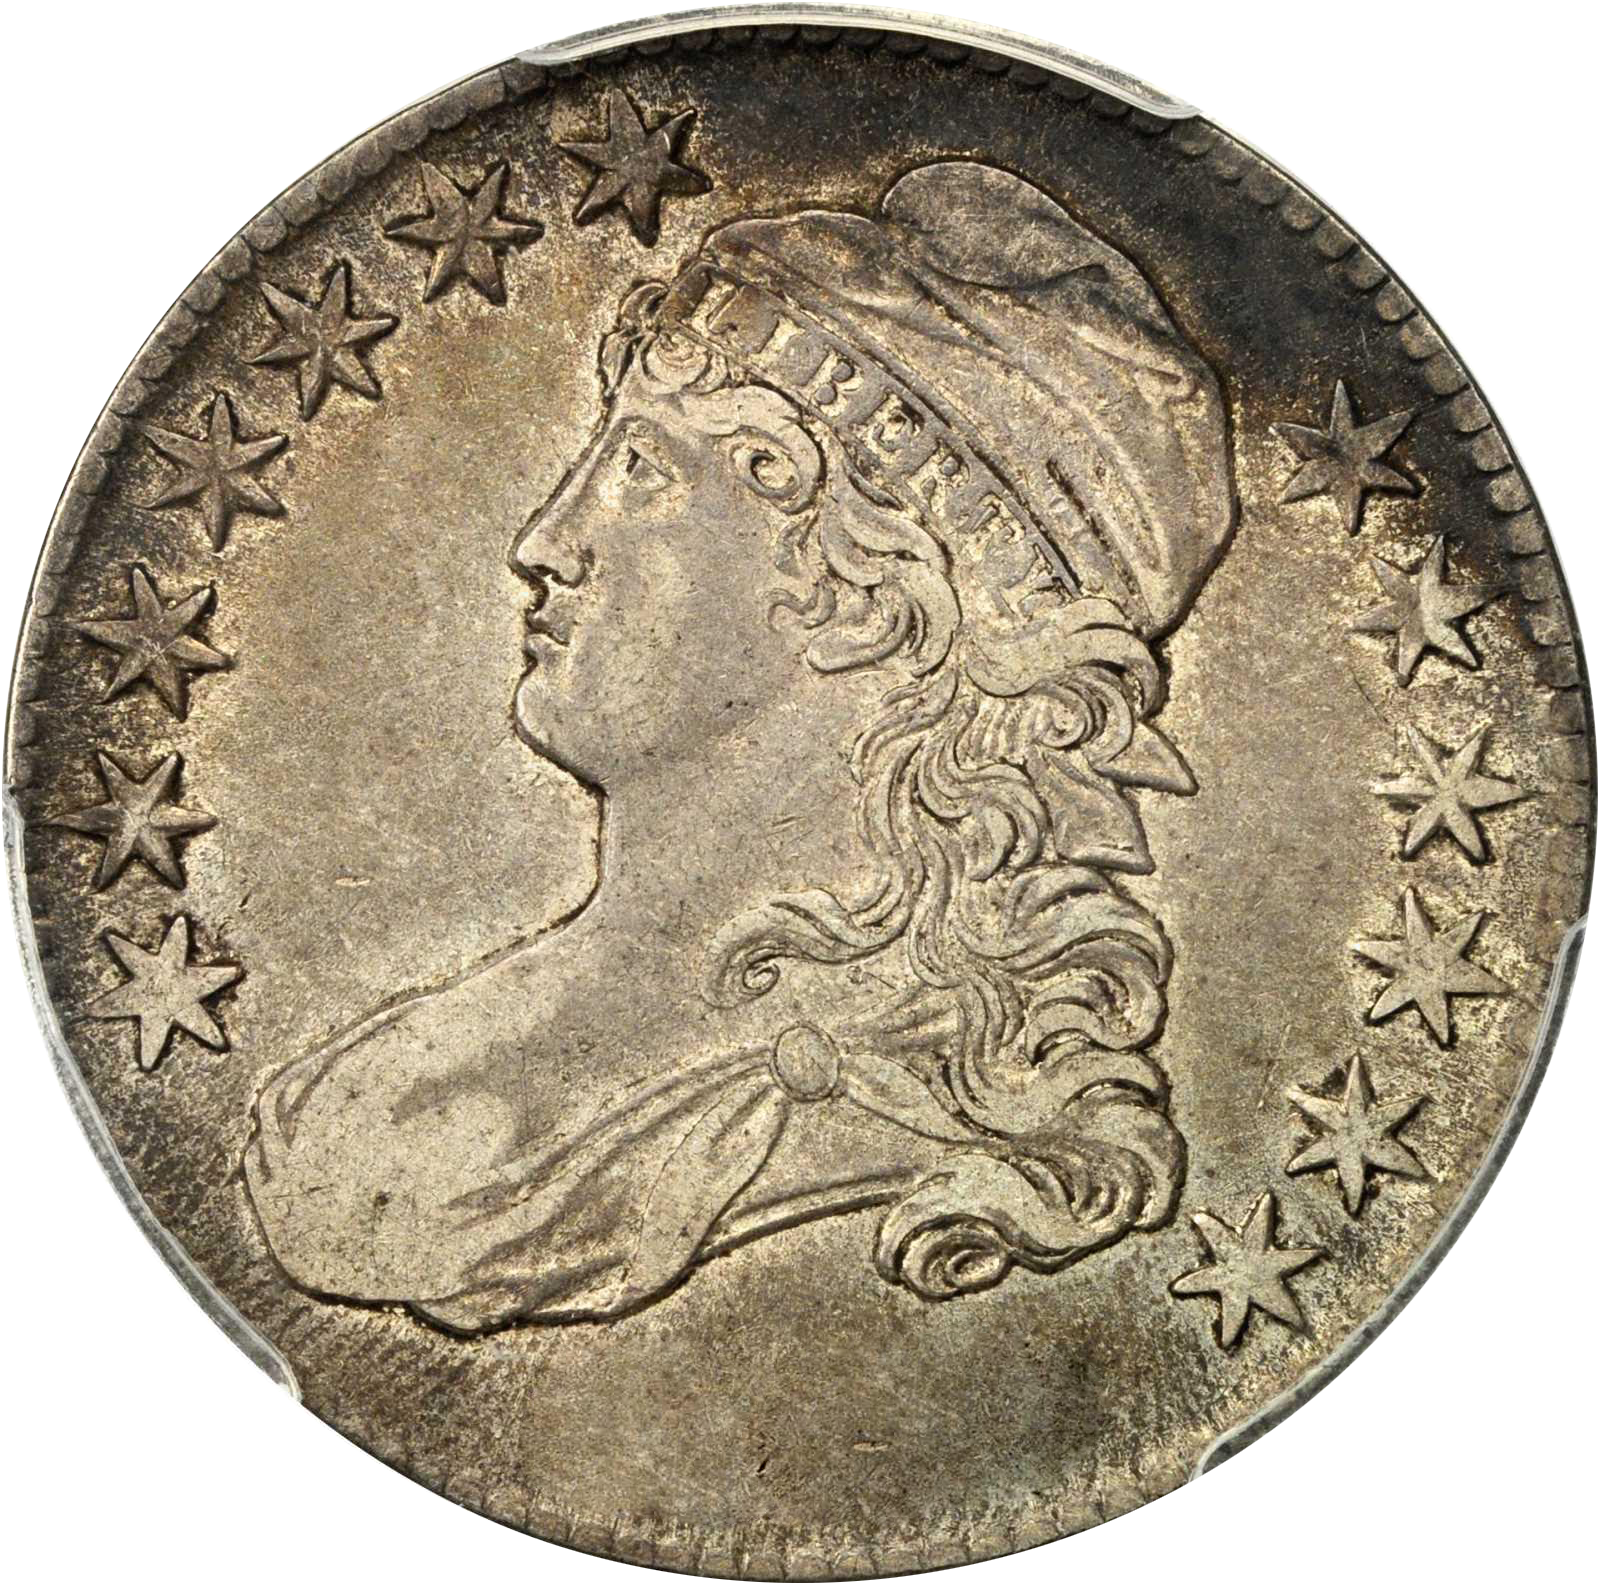 Value Of 1838 Capped Bust Half Dollars Auction Rare Coins